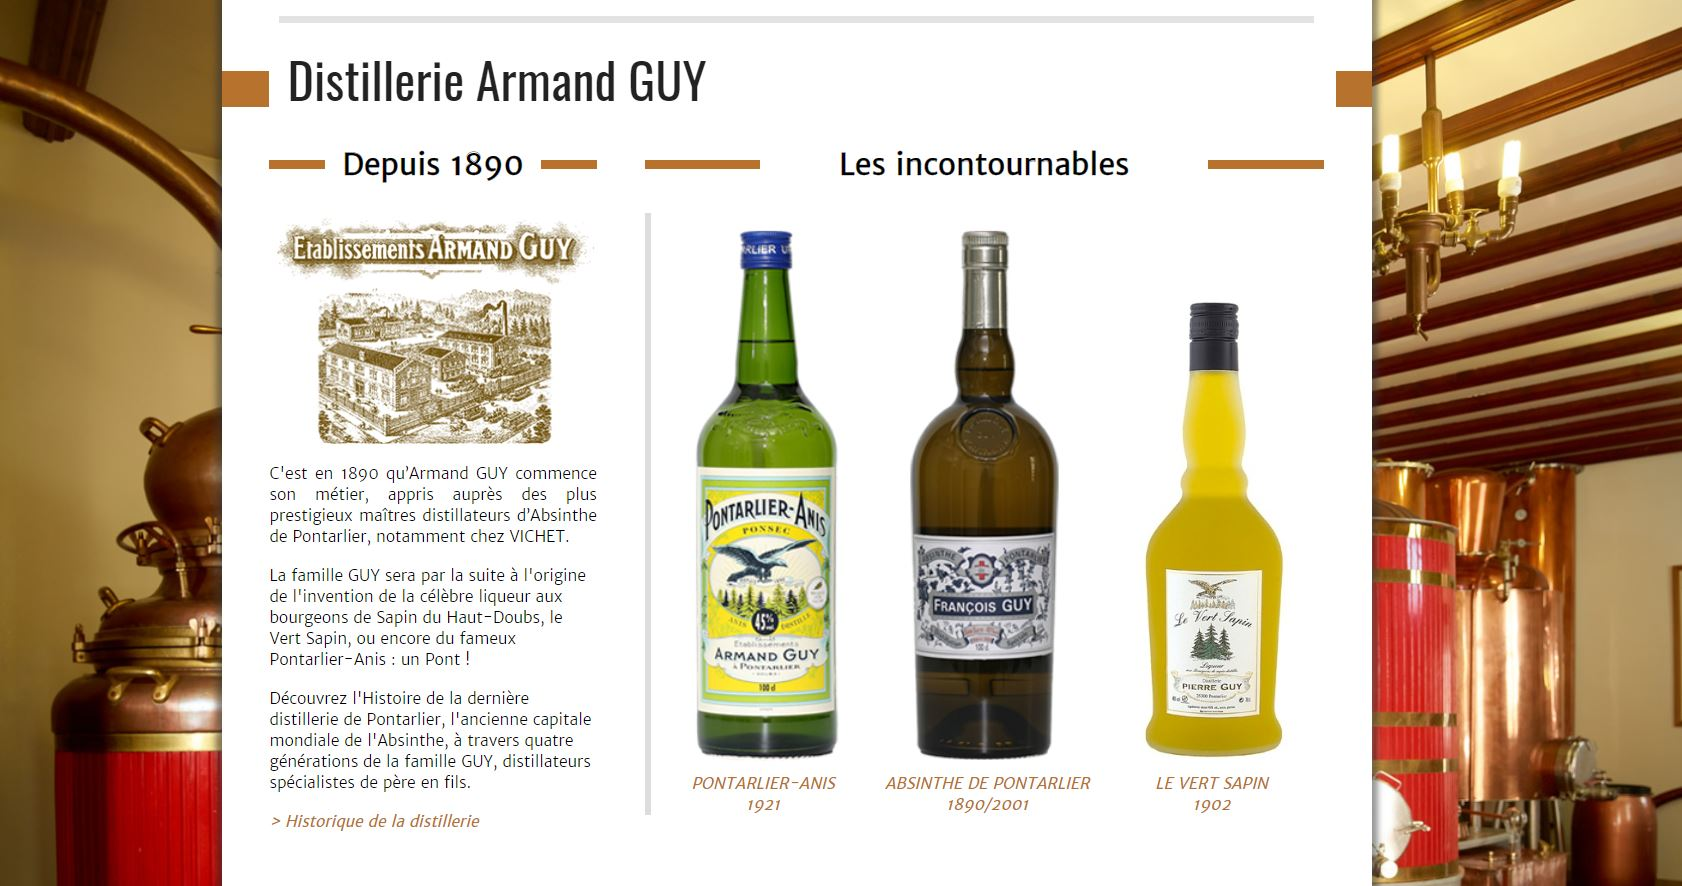 Distillerie Armand Guy Pontarlier